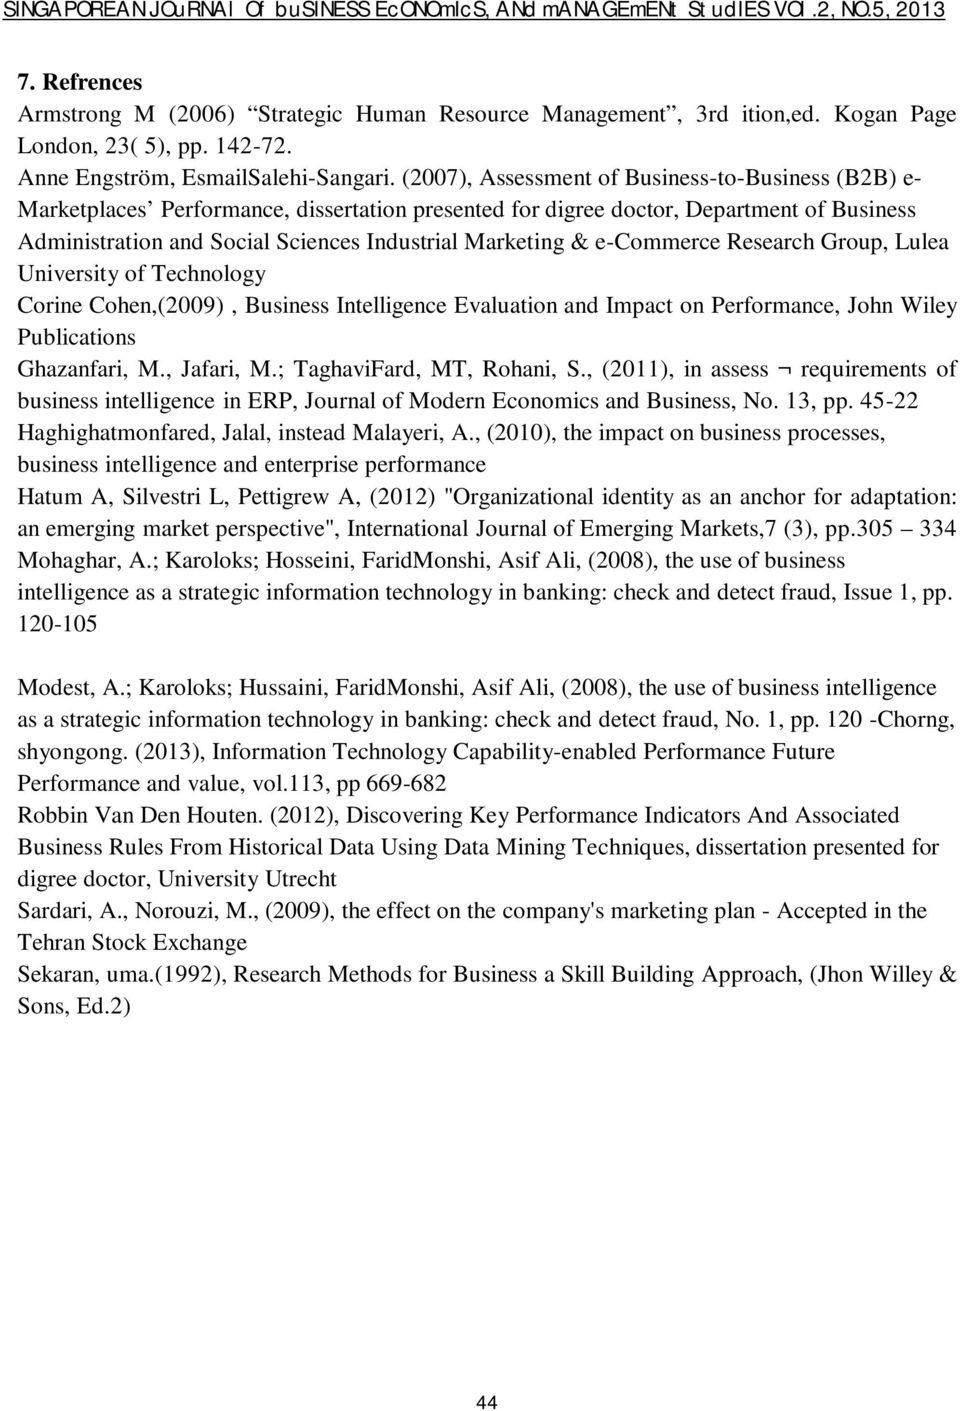 & e-commerce Research Group, Lulea University of Technology Corine Cohen,(2009), Business Intelligence Evaluation and Impact on Performance, John Wiley Publications Ghazanfari, M., Jafari, M.